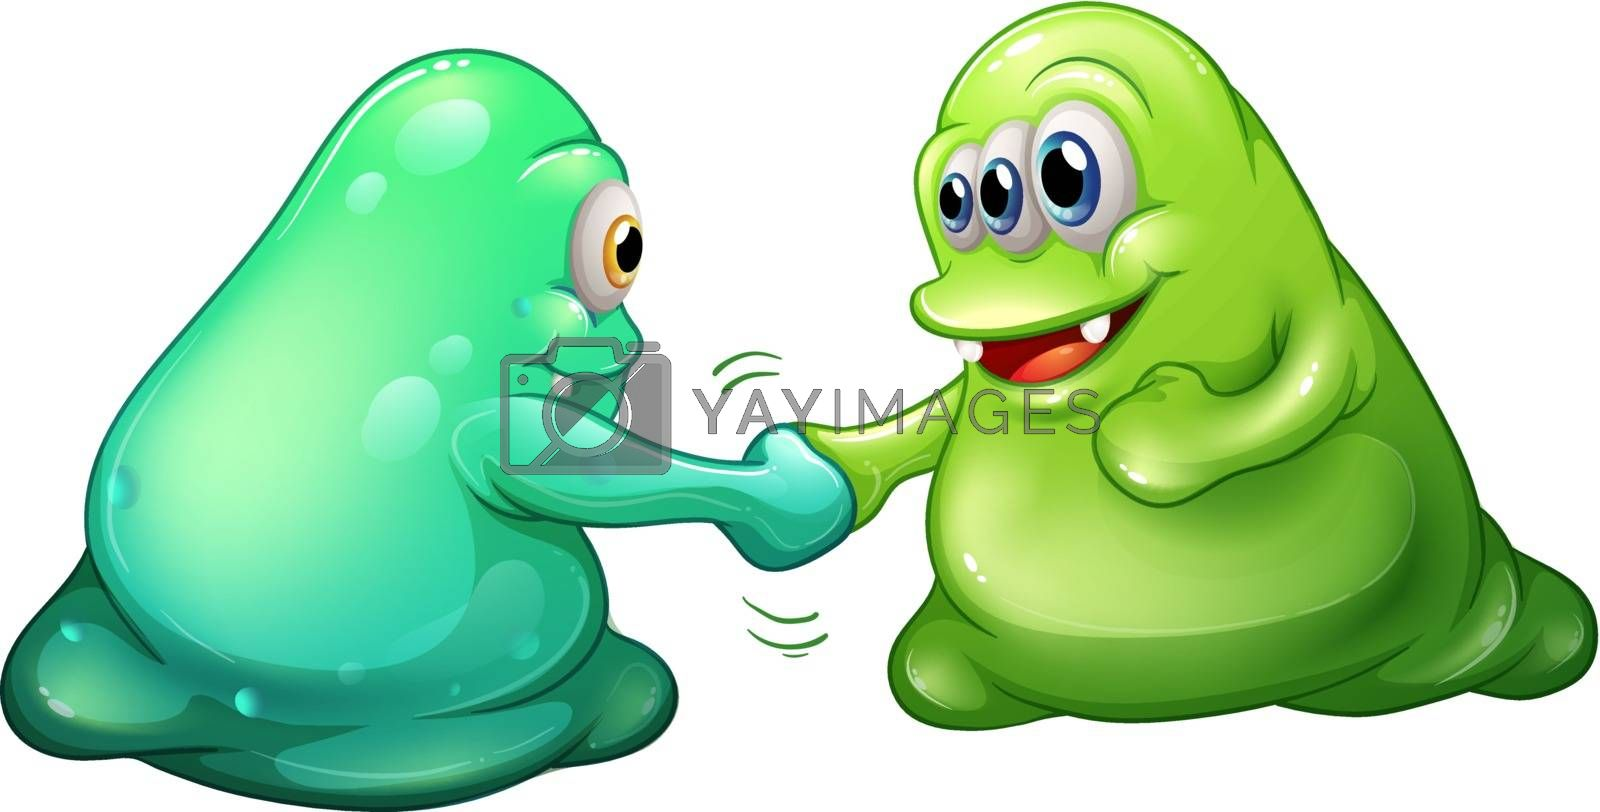 Illustration of a teamwork of monsters on a white background